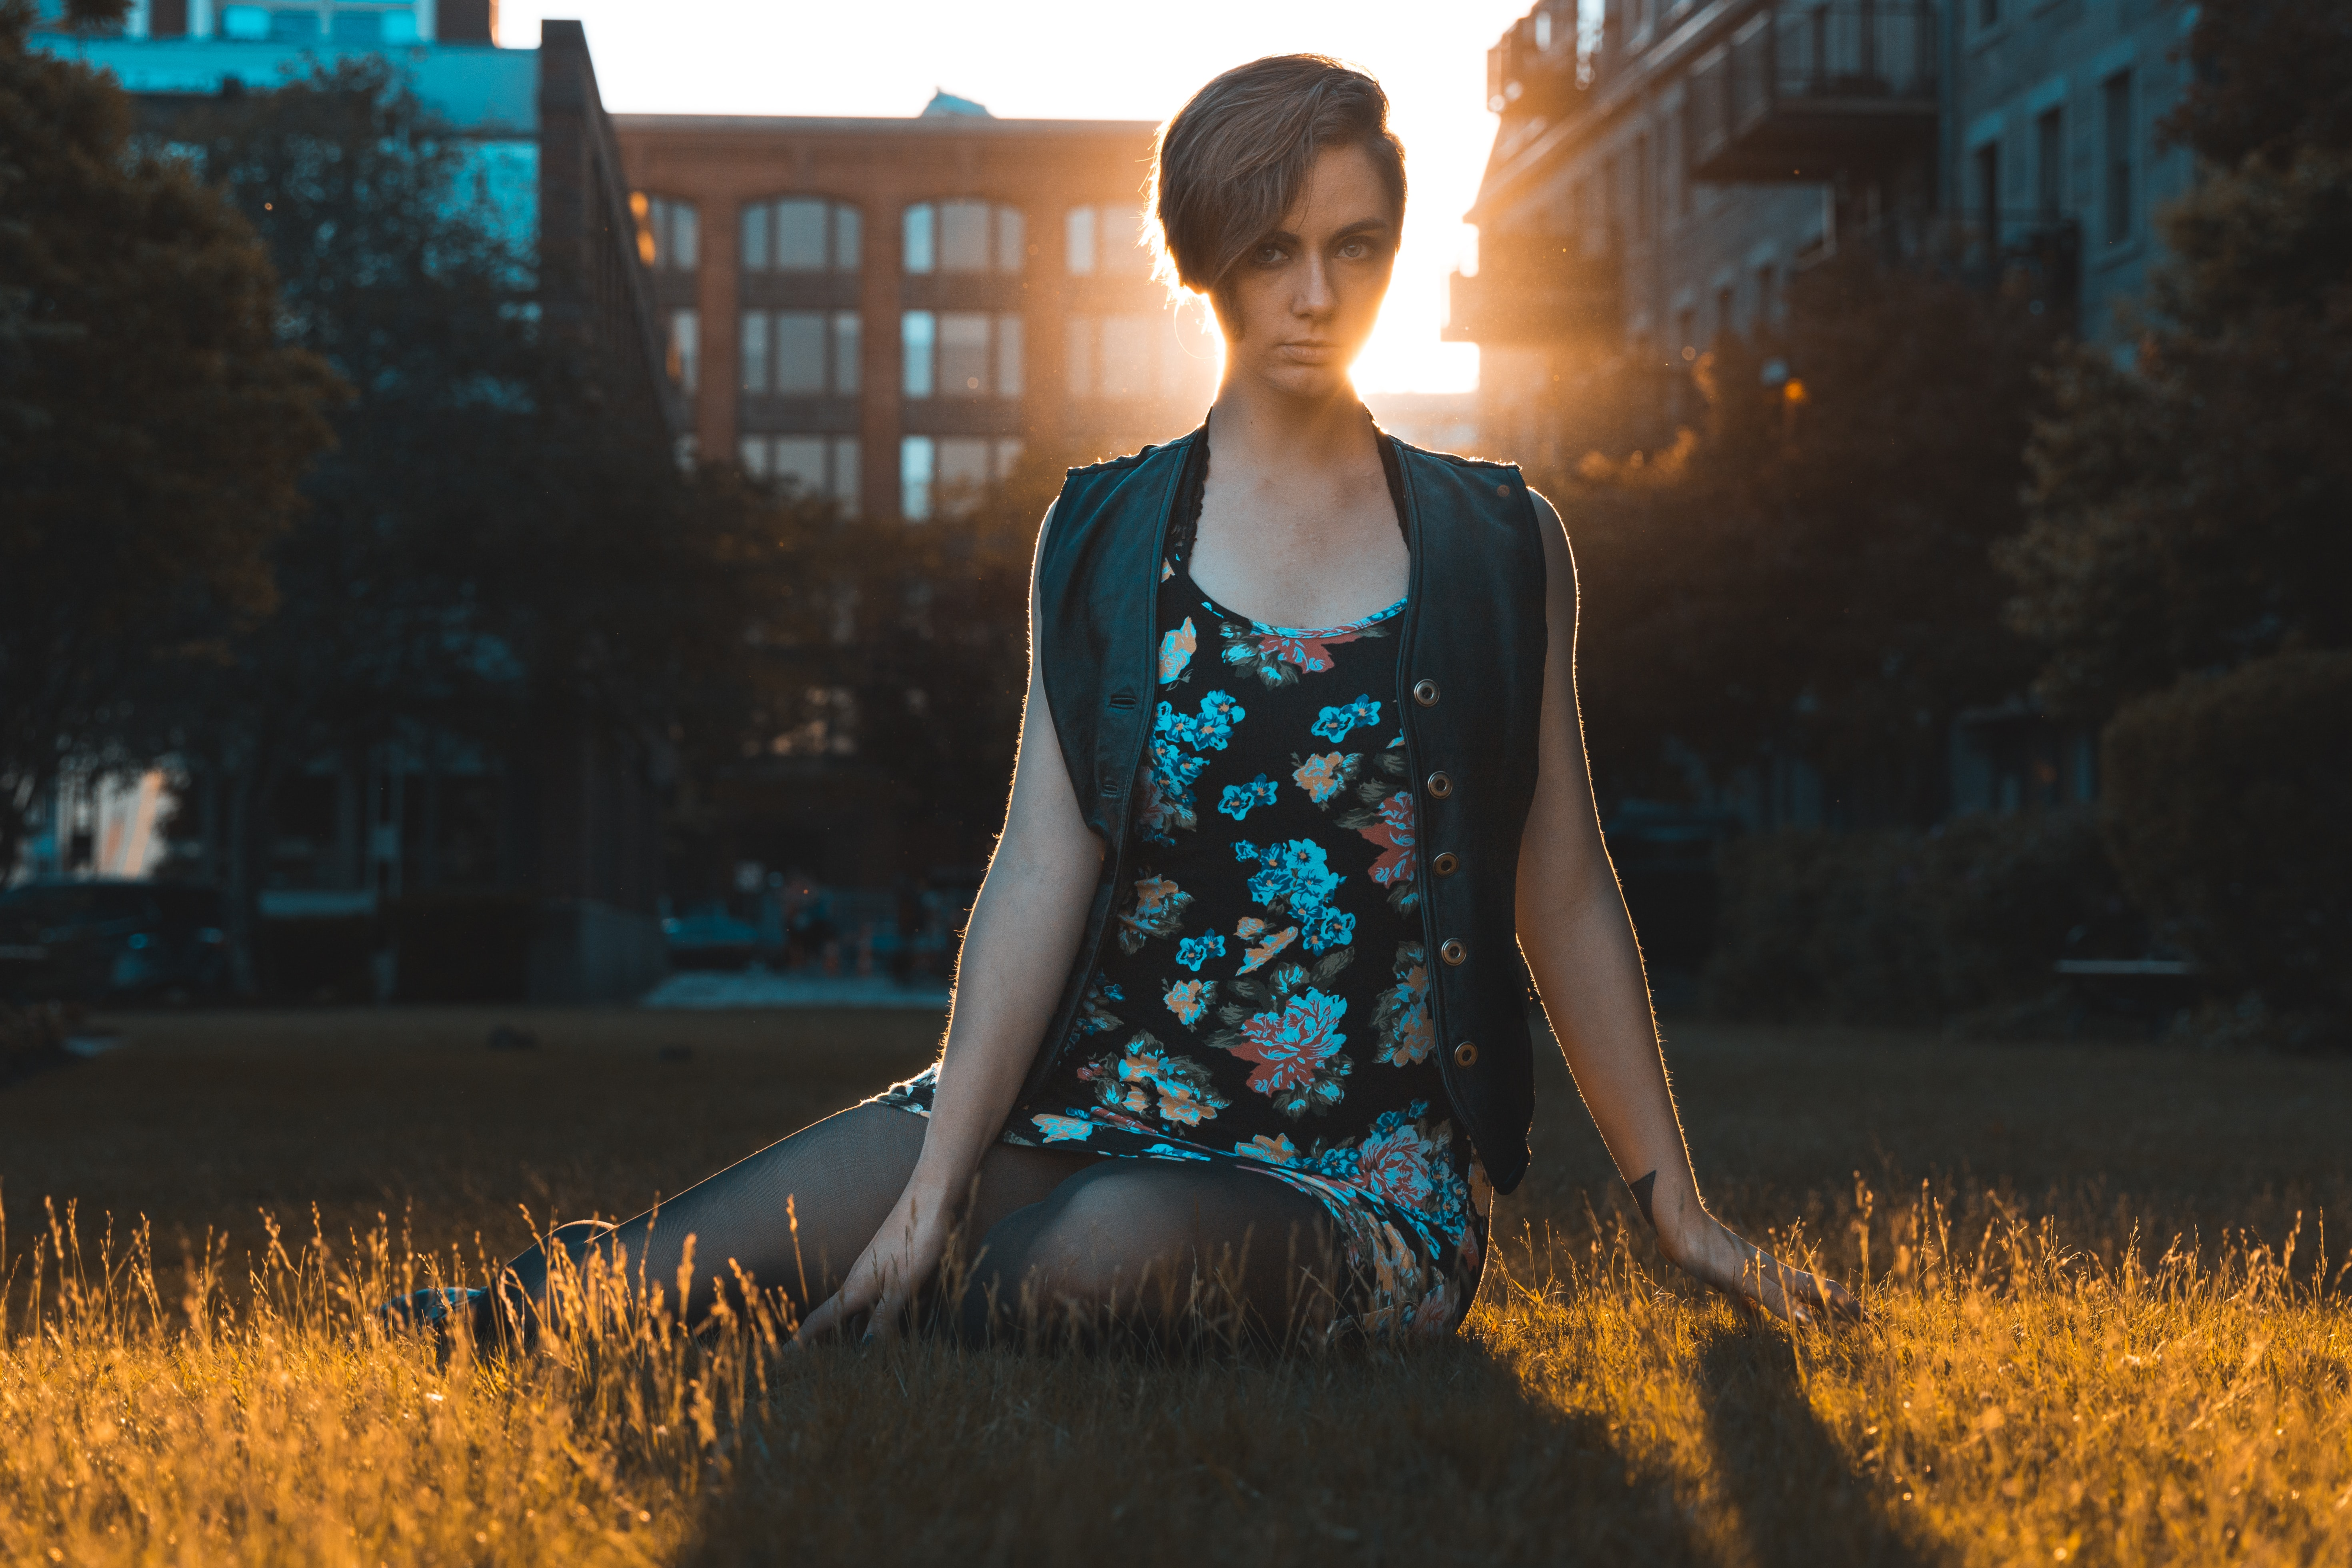 Backlit person in a floral dress siting in the grass staring seriously